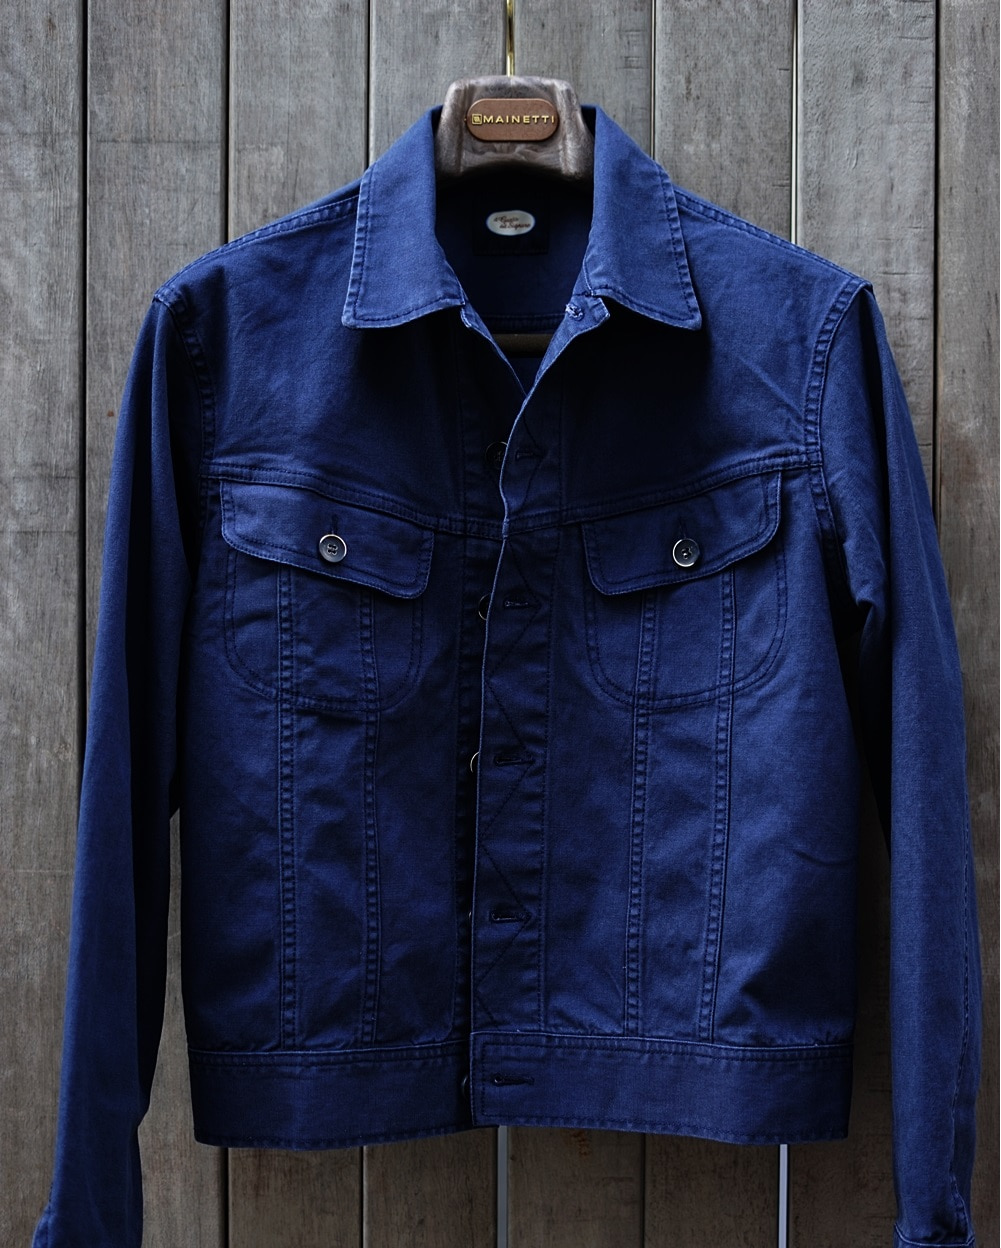 Trucker Jacket Oxford navyIL GUSTO DEL SIGNORE일 구스또 델 시뇨레